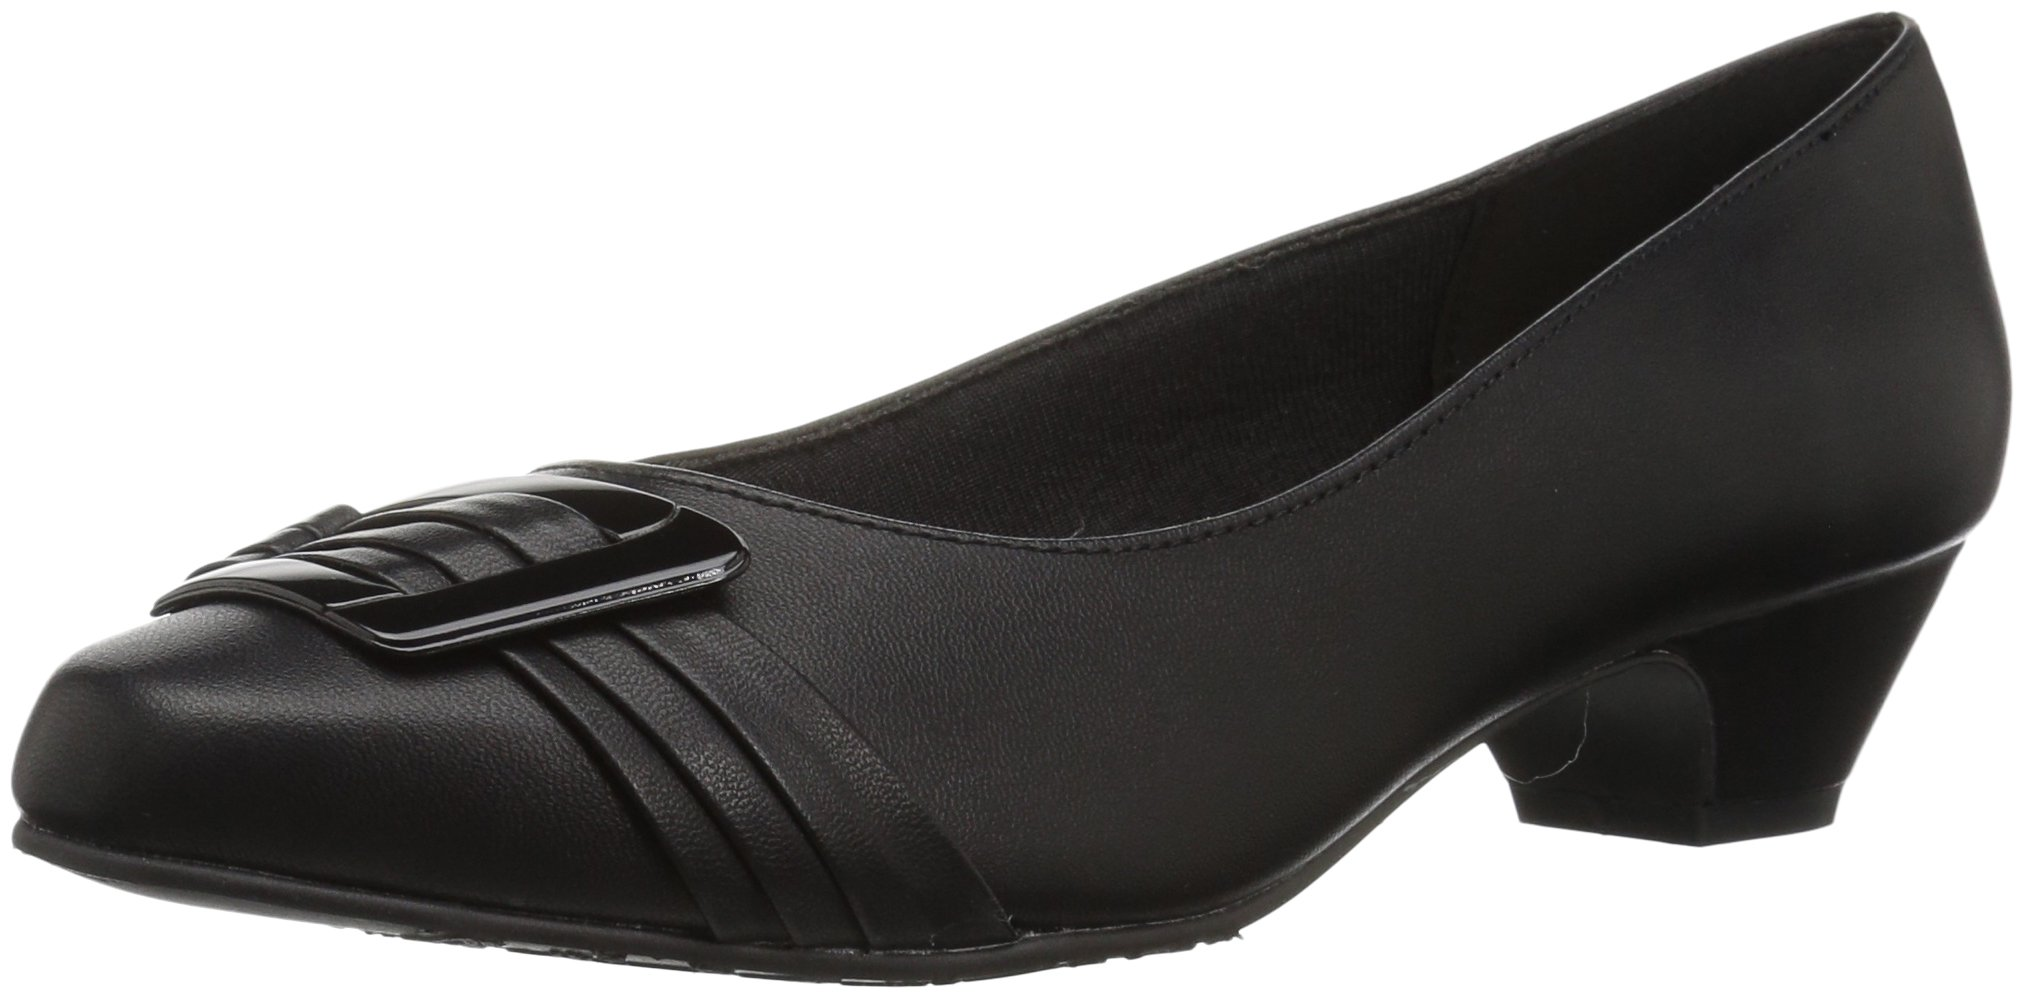 Soft Style by Hush Puppies Women's Pleats Be with You Dress Pump, Black/Patent, 11 W US